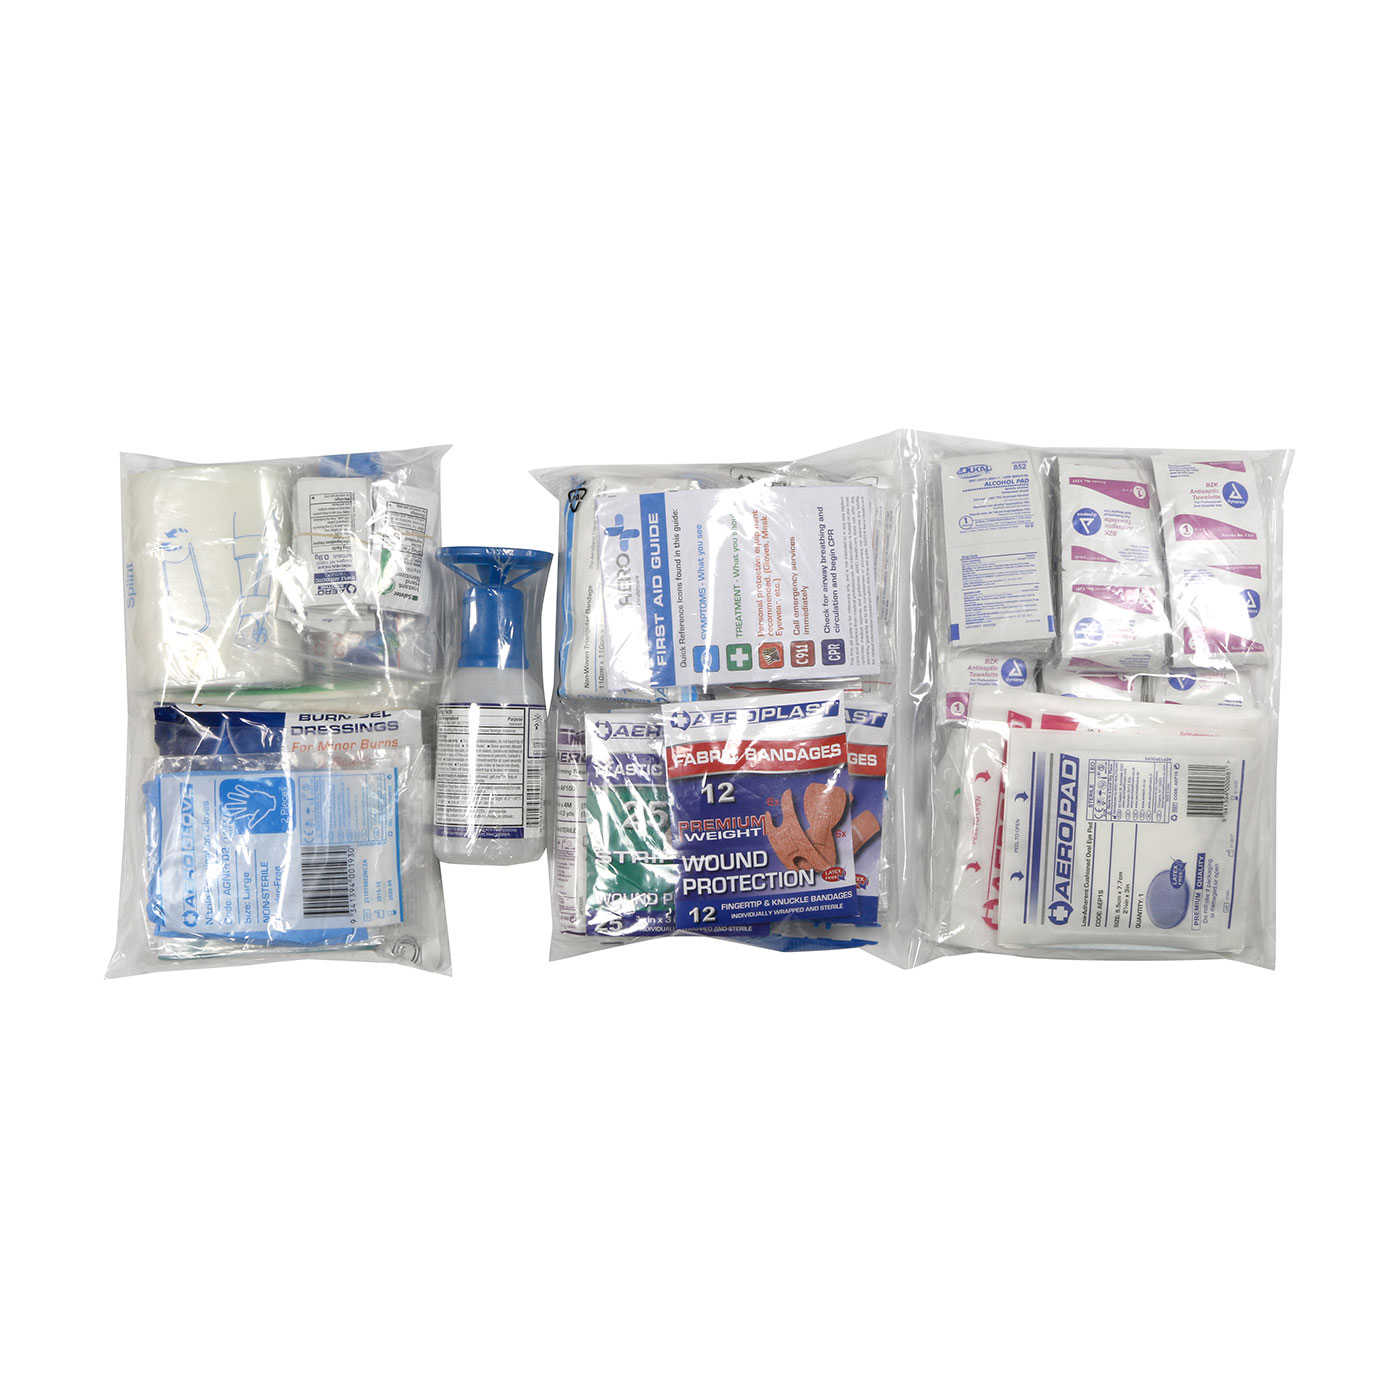 ANSI Class B First Aid Refill Pouches - 50 Person, Clear, KIT